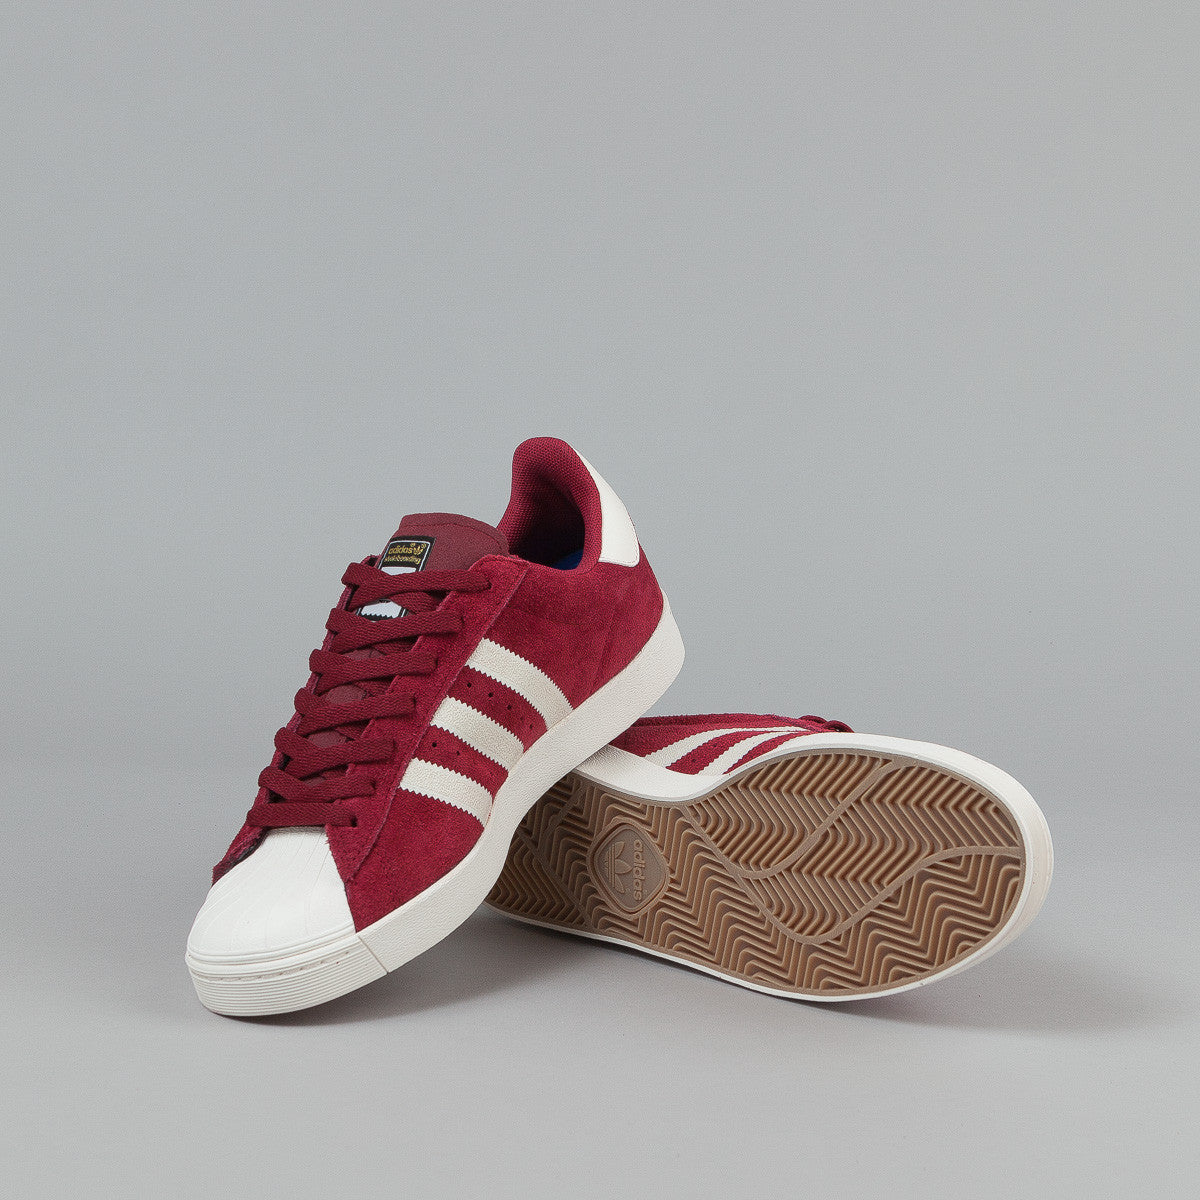 Buy superstar 80s red cheap Rimslow